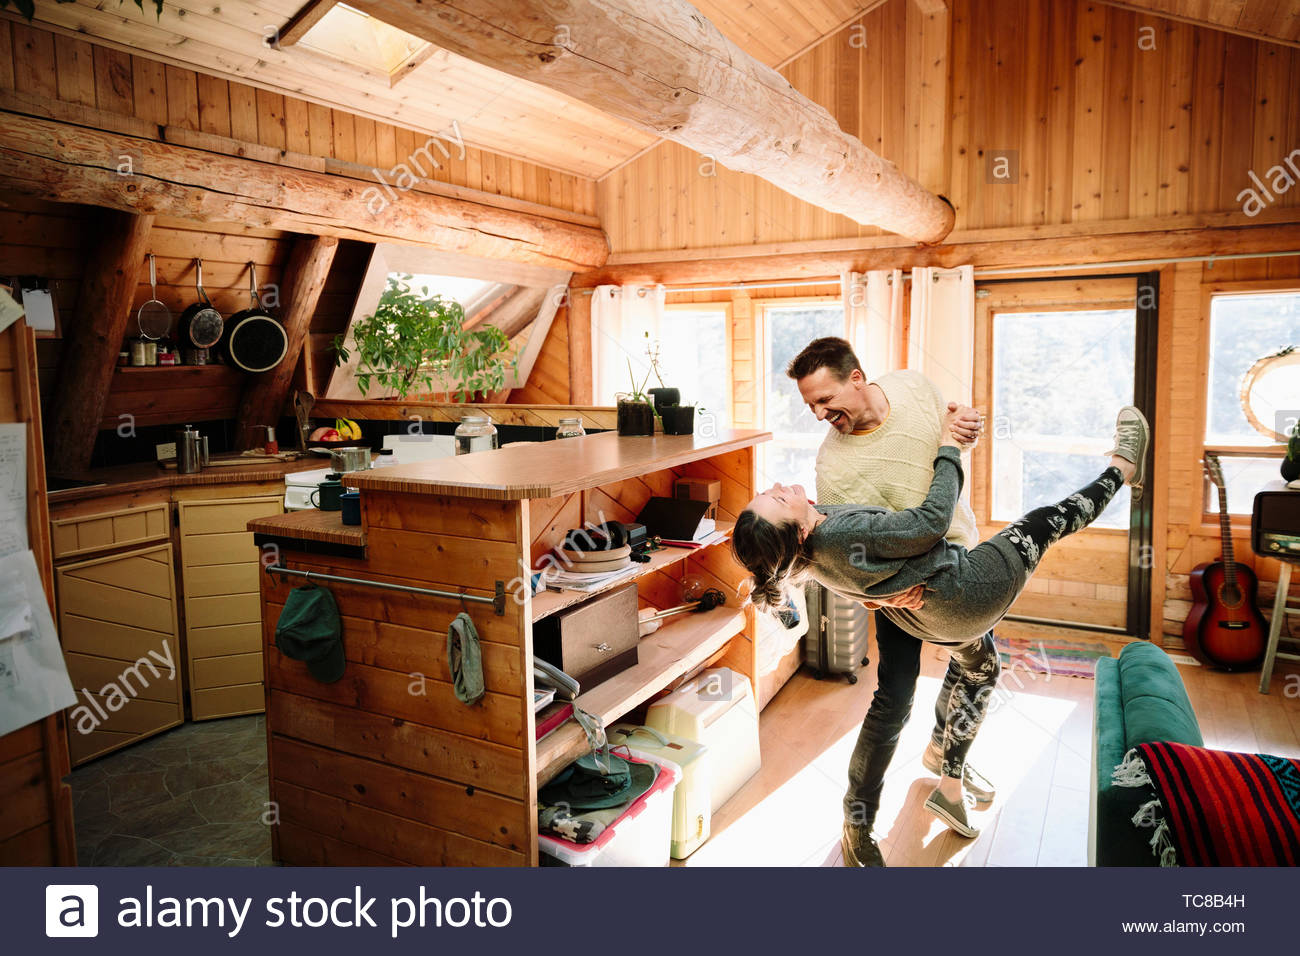 Playful couple dancing in cabin Photo Stock